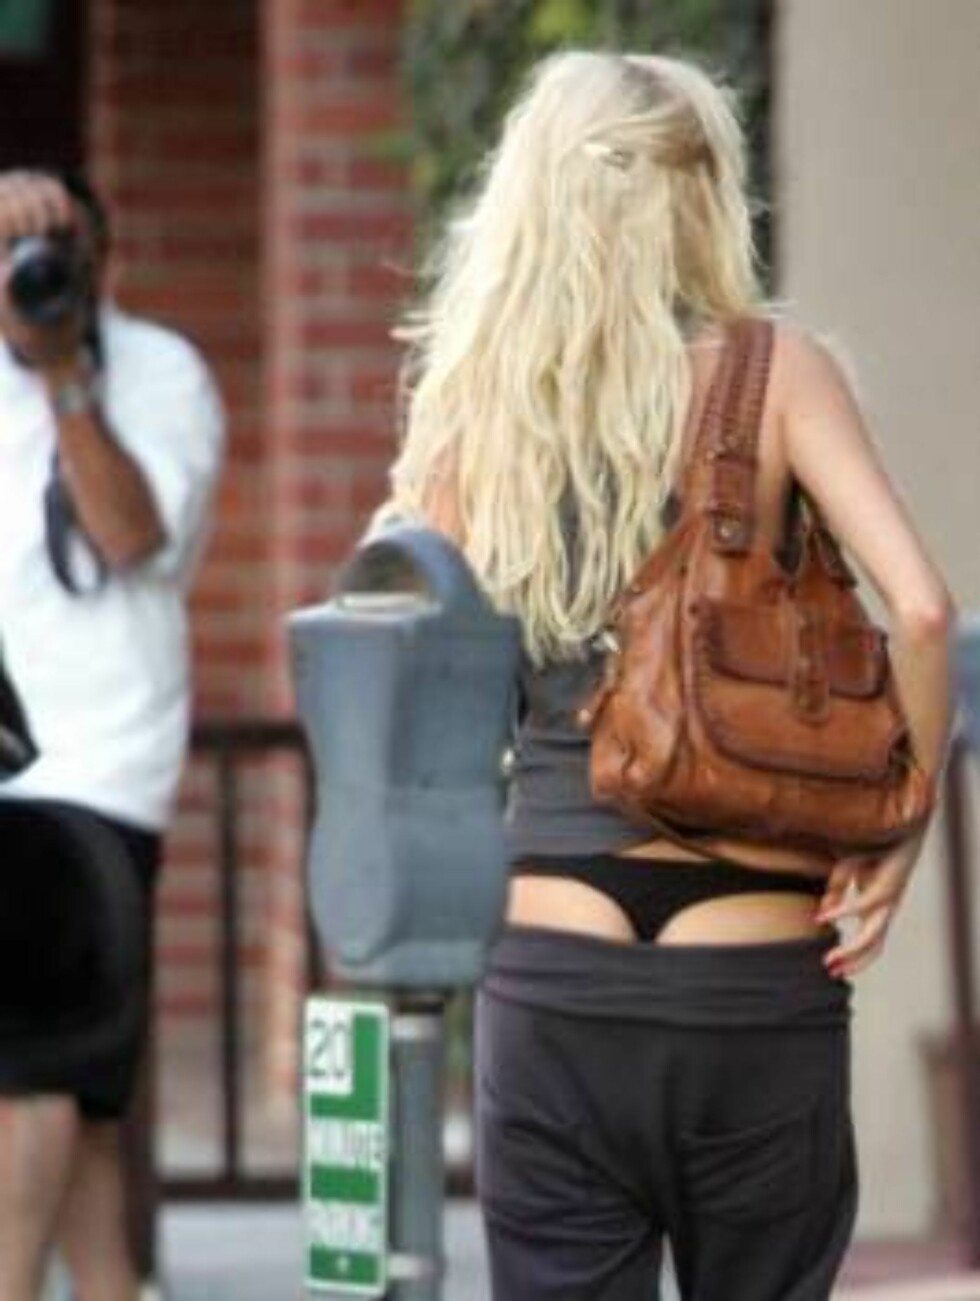 <strong>Code:</strong> X17XX8 - Ruano, Beverly Hills, USA, 13.06.2005: Kimberly Stewart has a problem with her pants as she goes to visit a nail salon in Beverly Hills. Rod Stewart's daughter is showing her underwear to the bystanders as her pants keep sliding down. All Foto: All Over Press